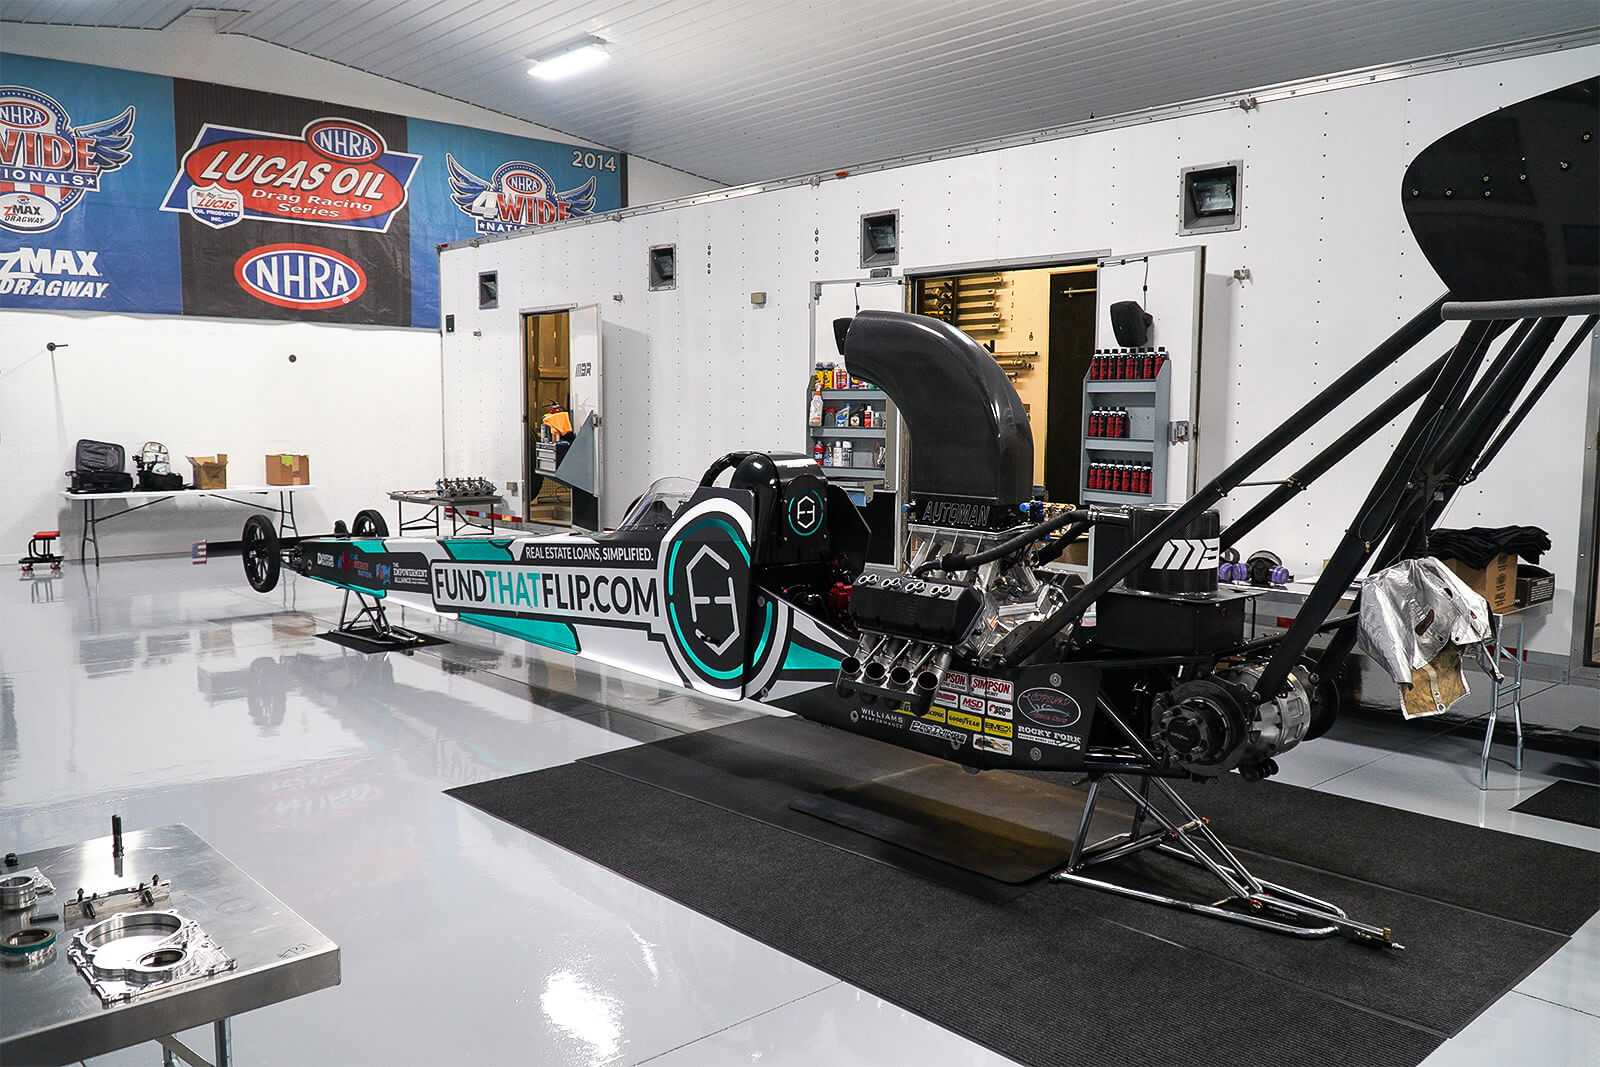 Fund That Flip's recent rebrand will be on full display when MBR hits the track with a striking graphics package featuring turquoise chrome vinyl.